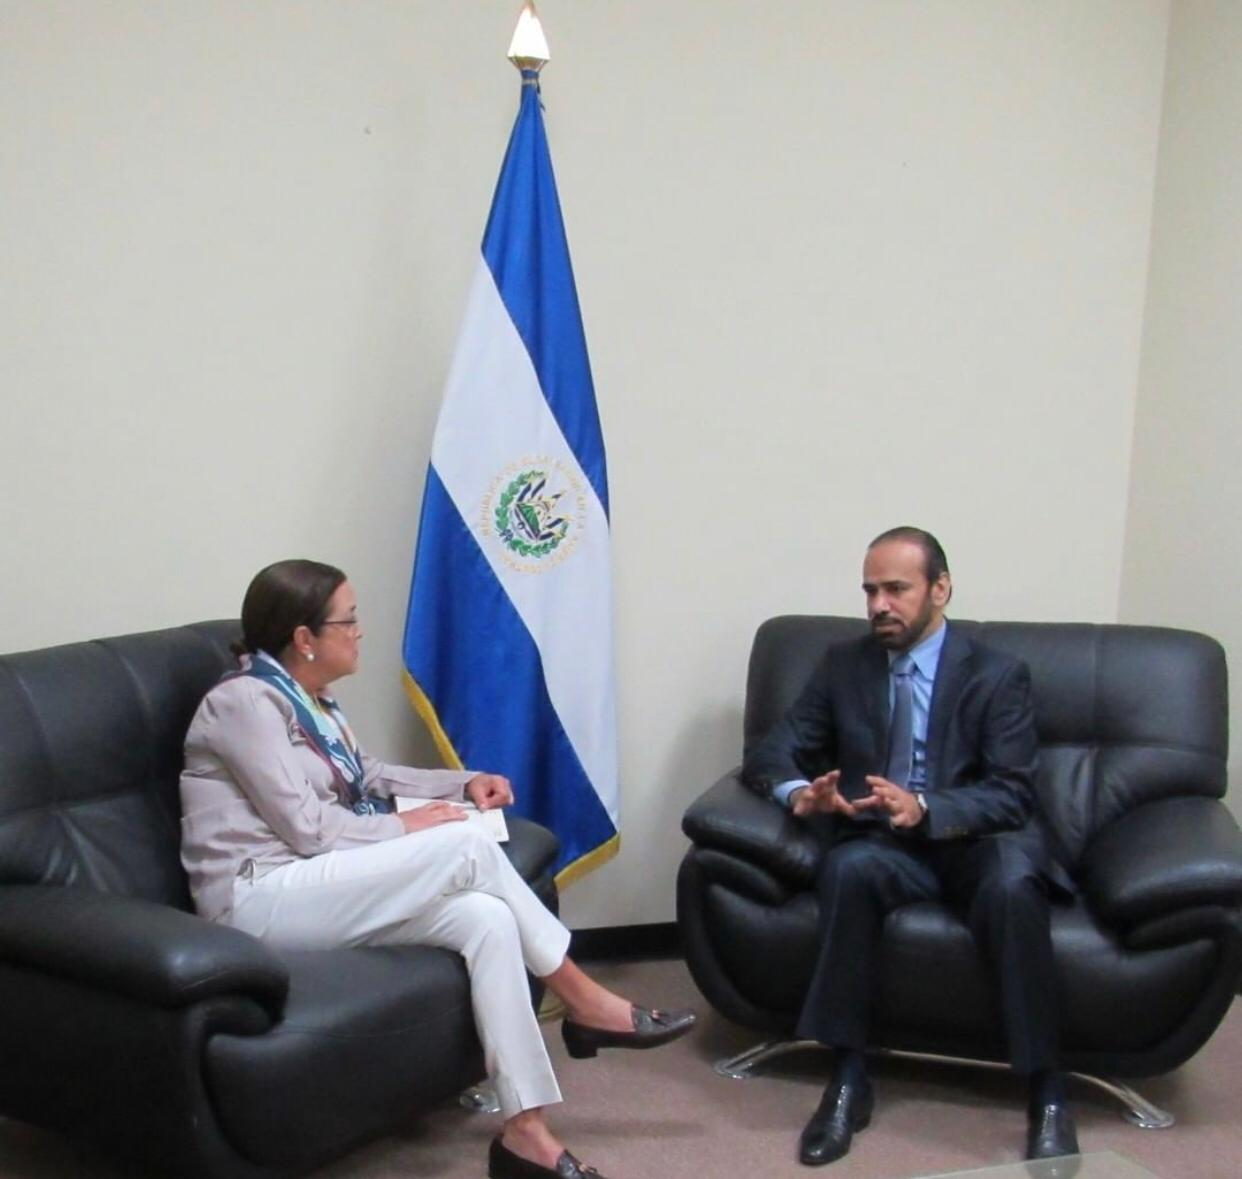 Deputy Prime Minister and Minister of Foreign Affairs Sends Message to El Salvador FM